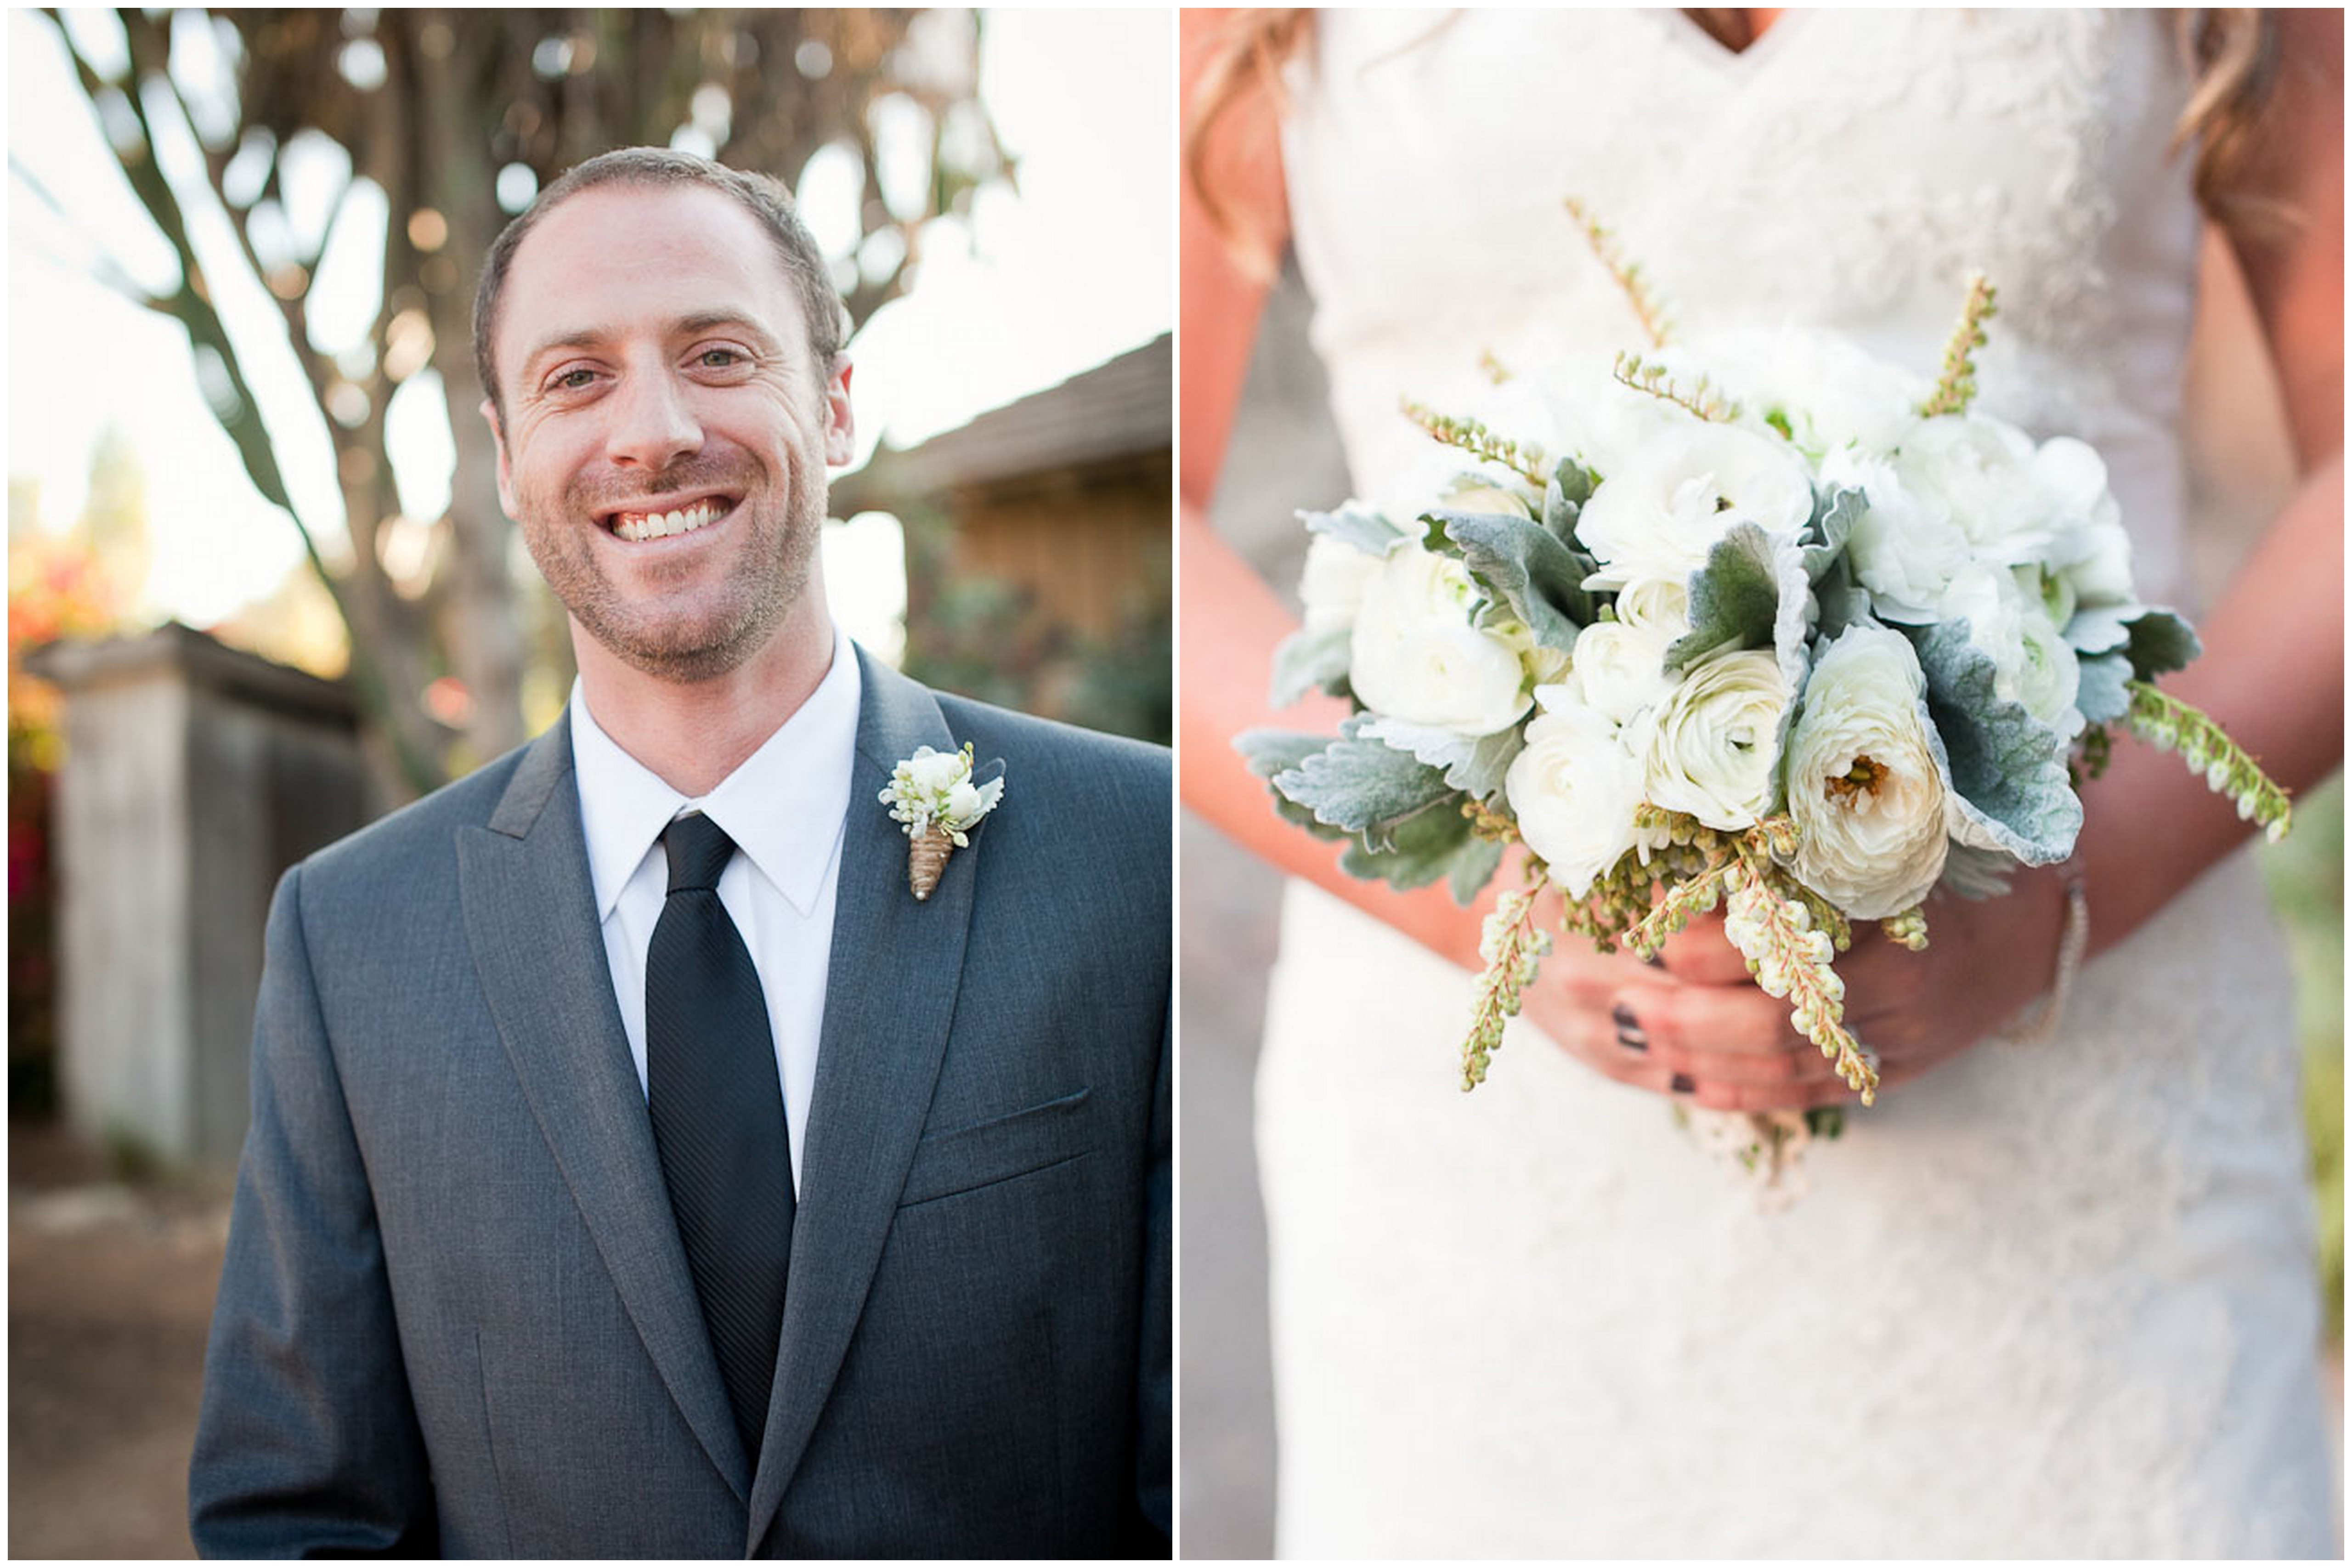 Intimate Outdoor Southern California Wedding Inspired